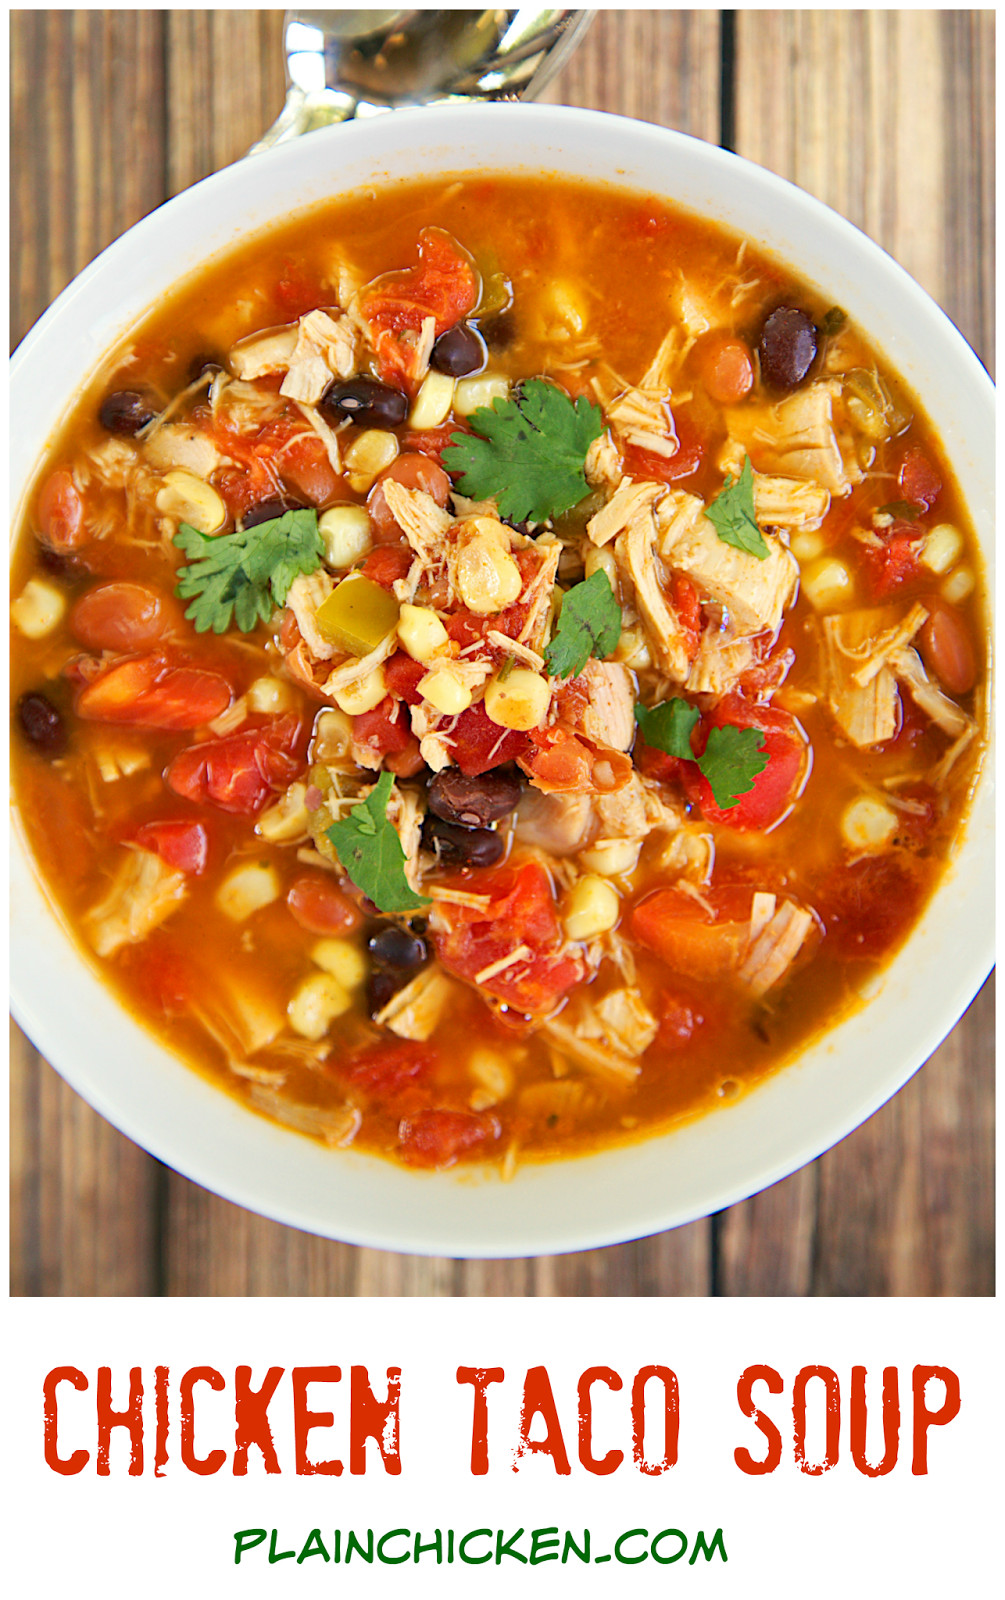 Chicken Taco Soup  Chicken Taco Soup Two Ways Plain Chicken